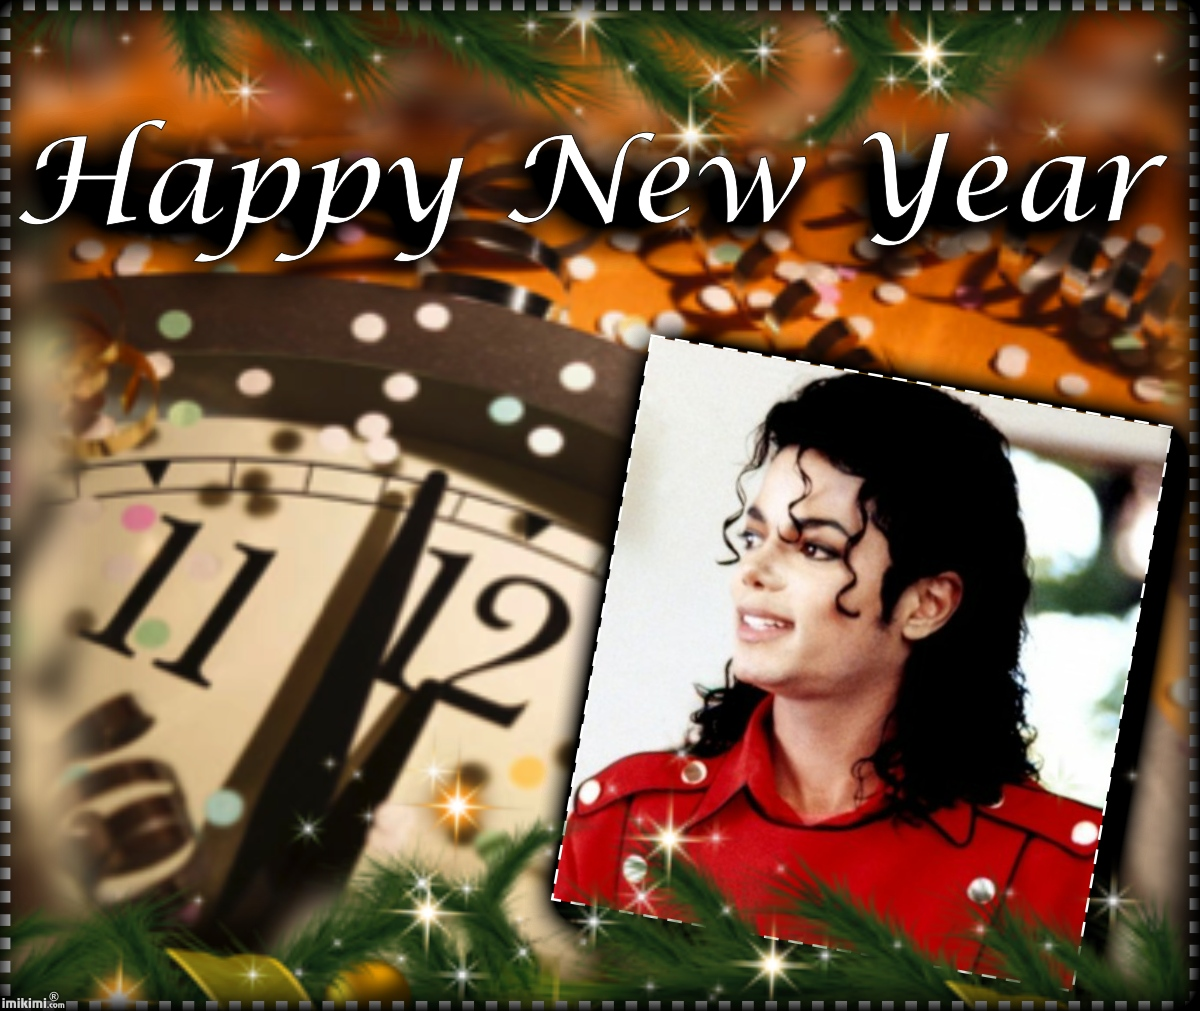 HAPPY NEW YEAR, MICHAEL!